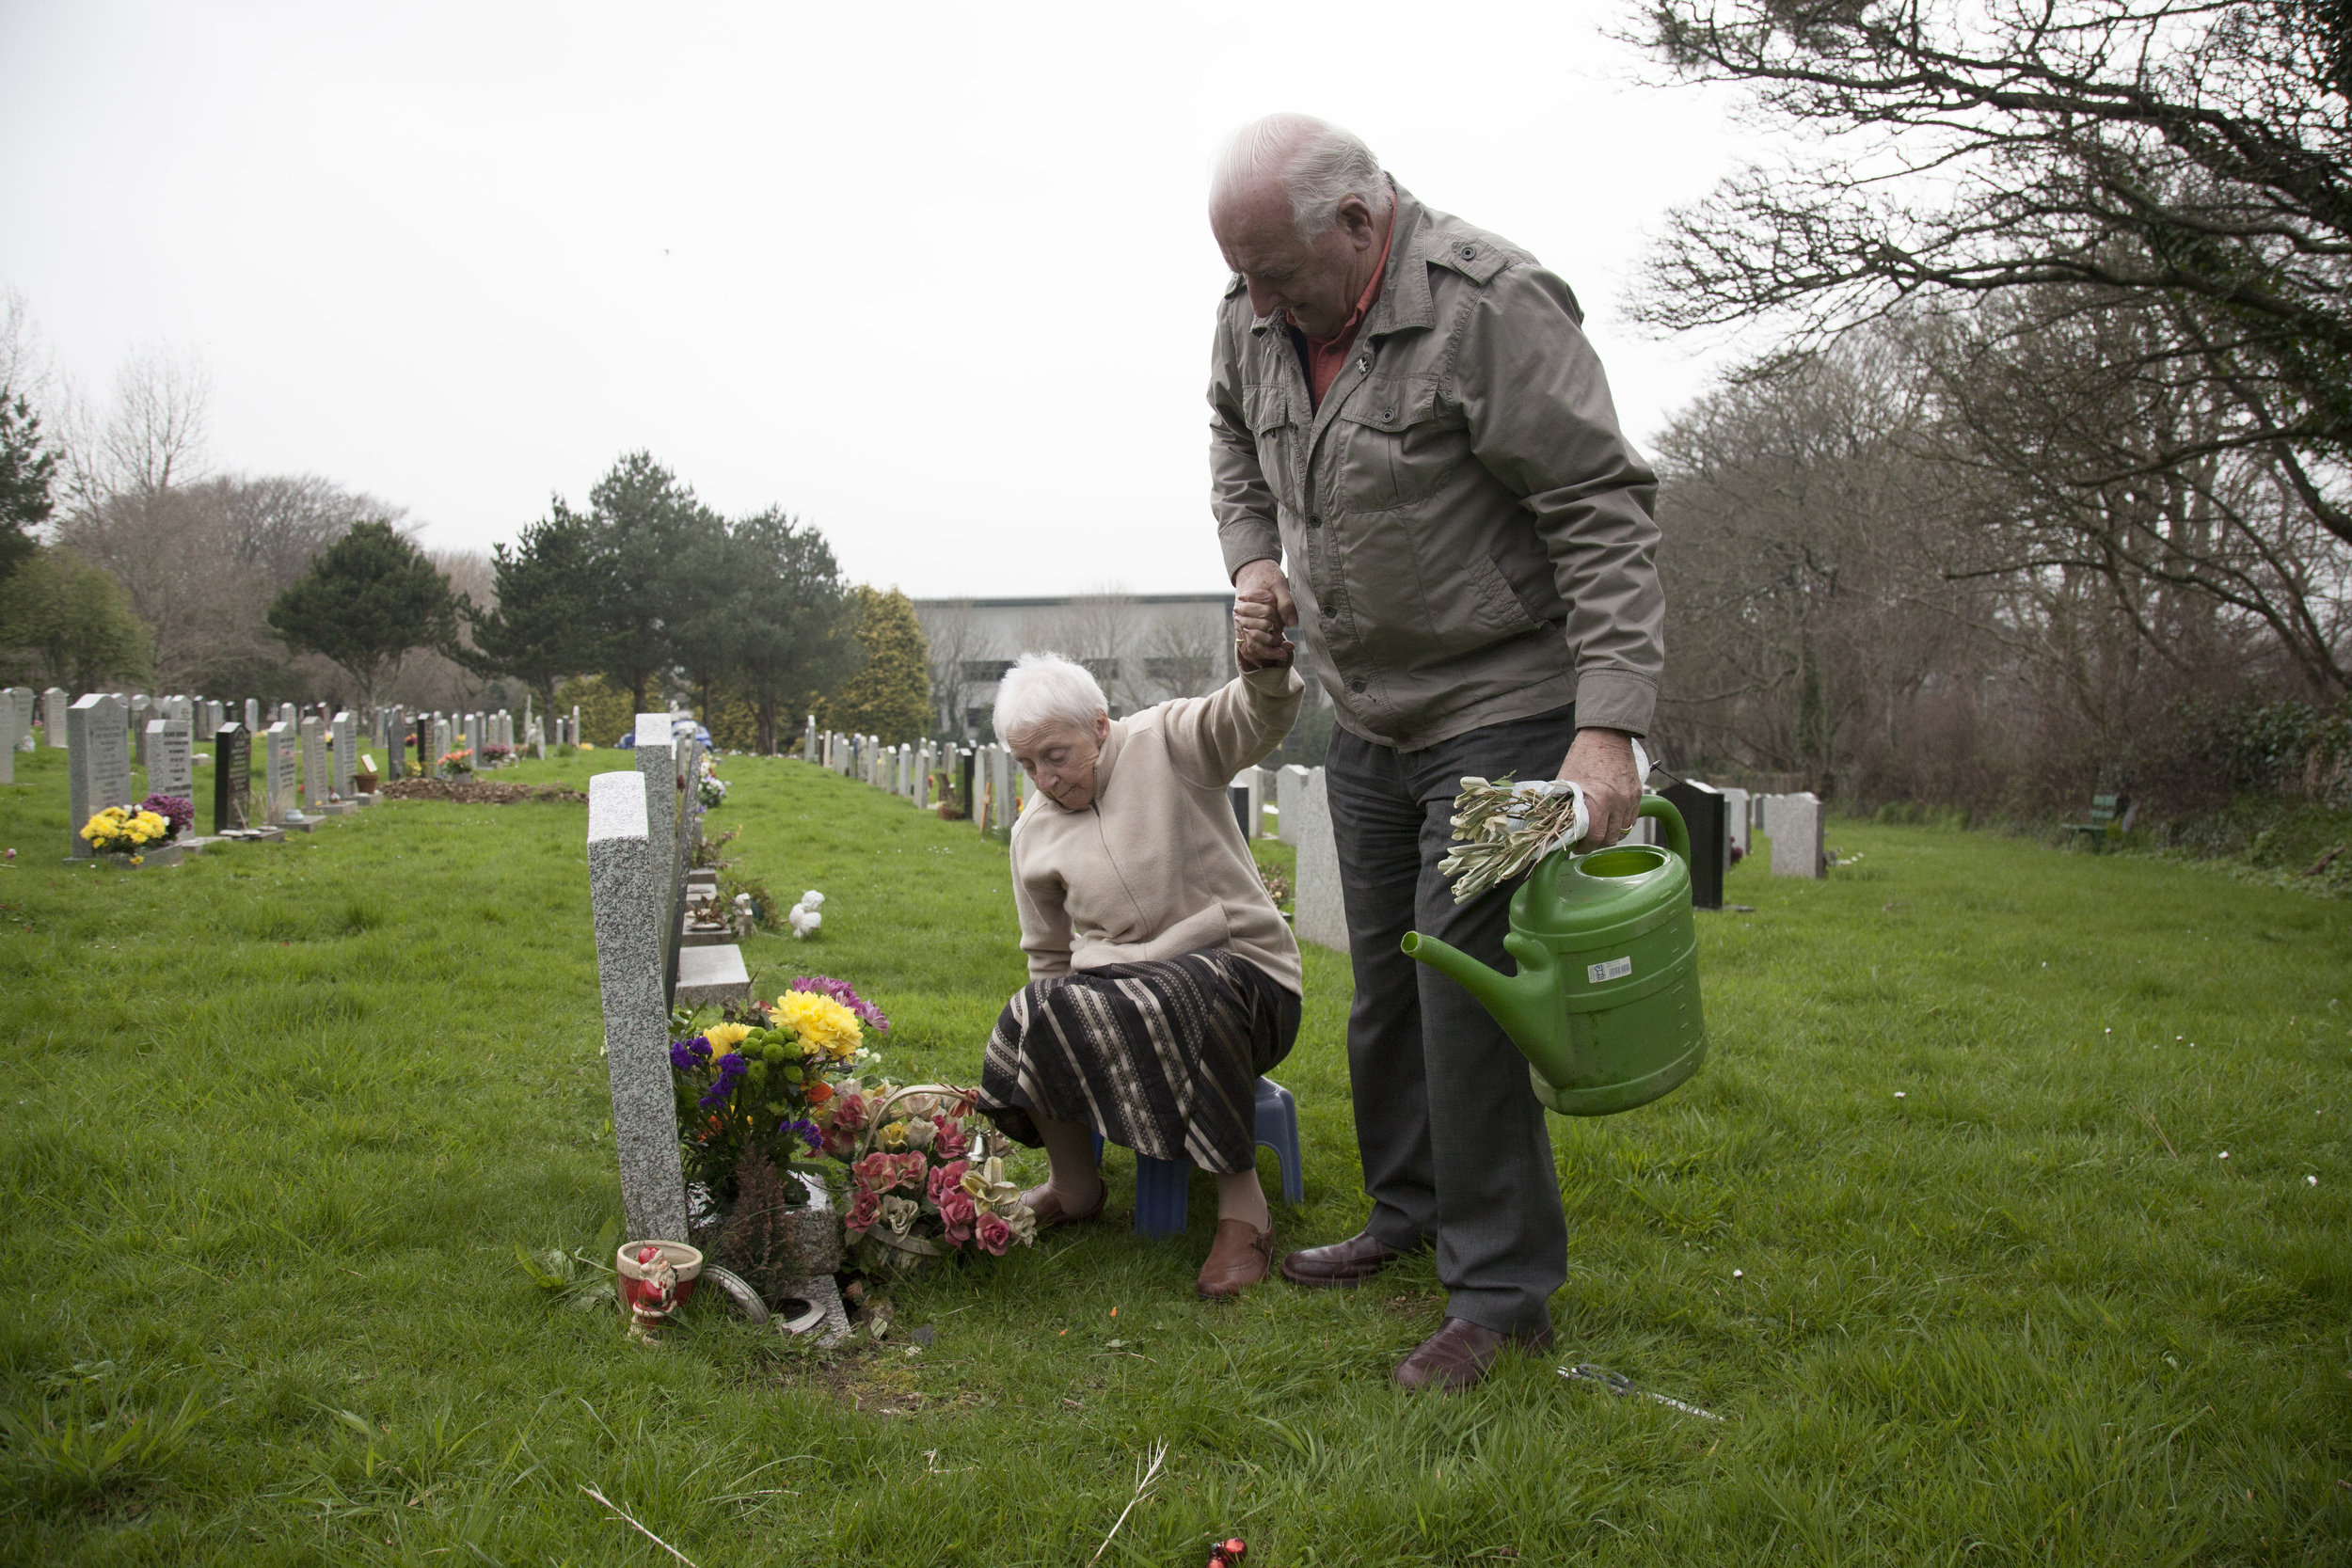 Graham and Lilyan visiting their daughter, Sarahs, grave. When Graham and lilyan were younger they lost their daughter at a young age. Their other daughter lives in Kent with her husband and children.